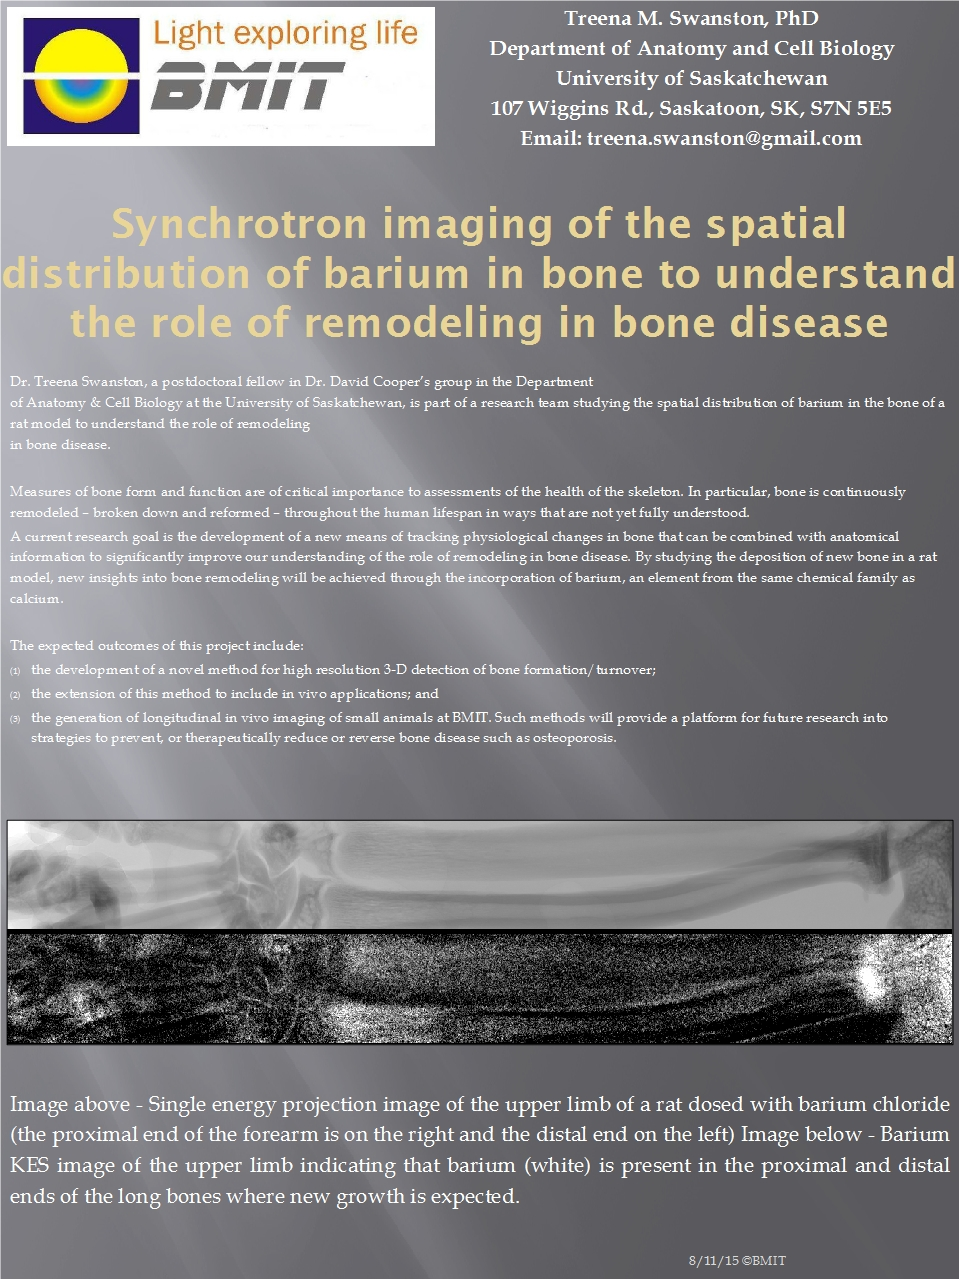 Synchrotron Imaging Of the Spatial Distribution of Barium in Bone to Understand the Role of Remodeling In Bone Disease  Image